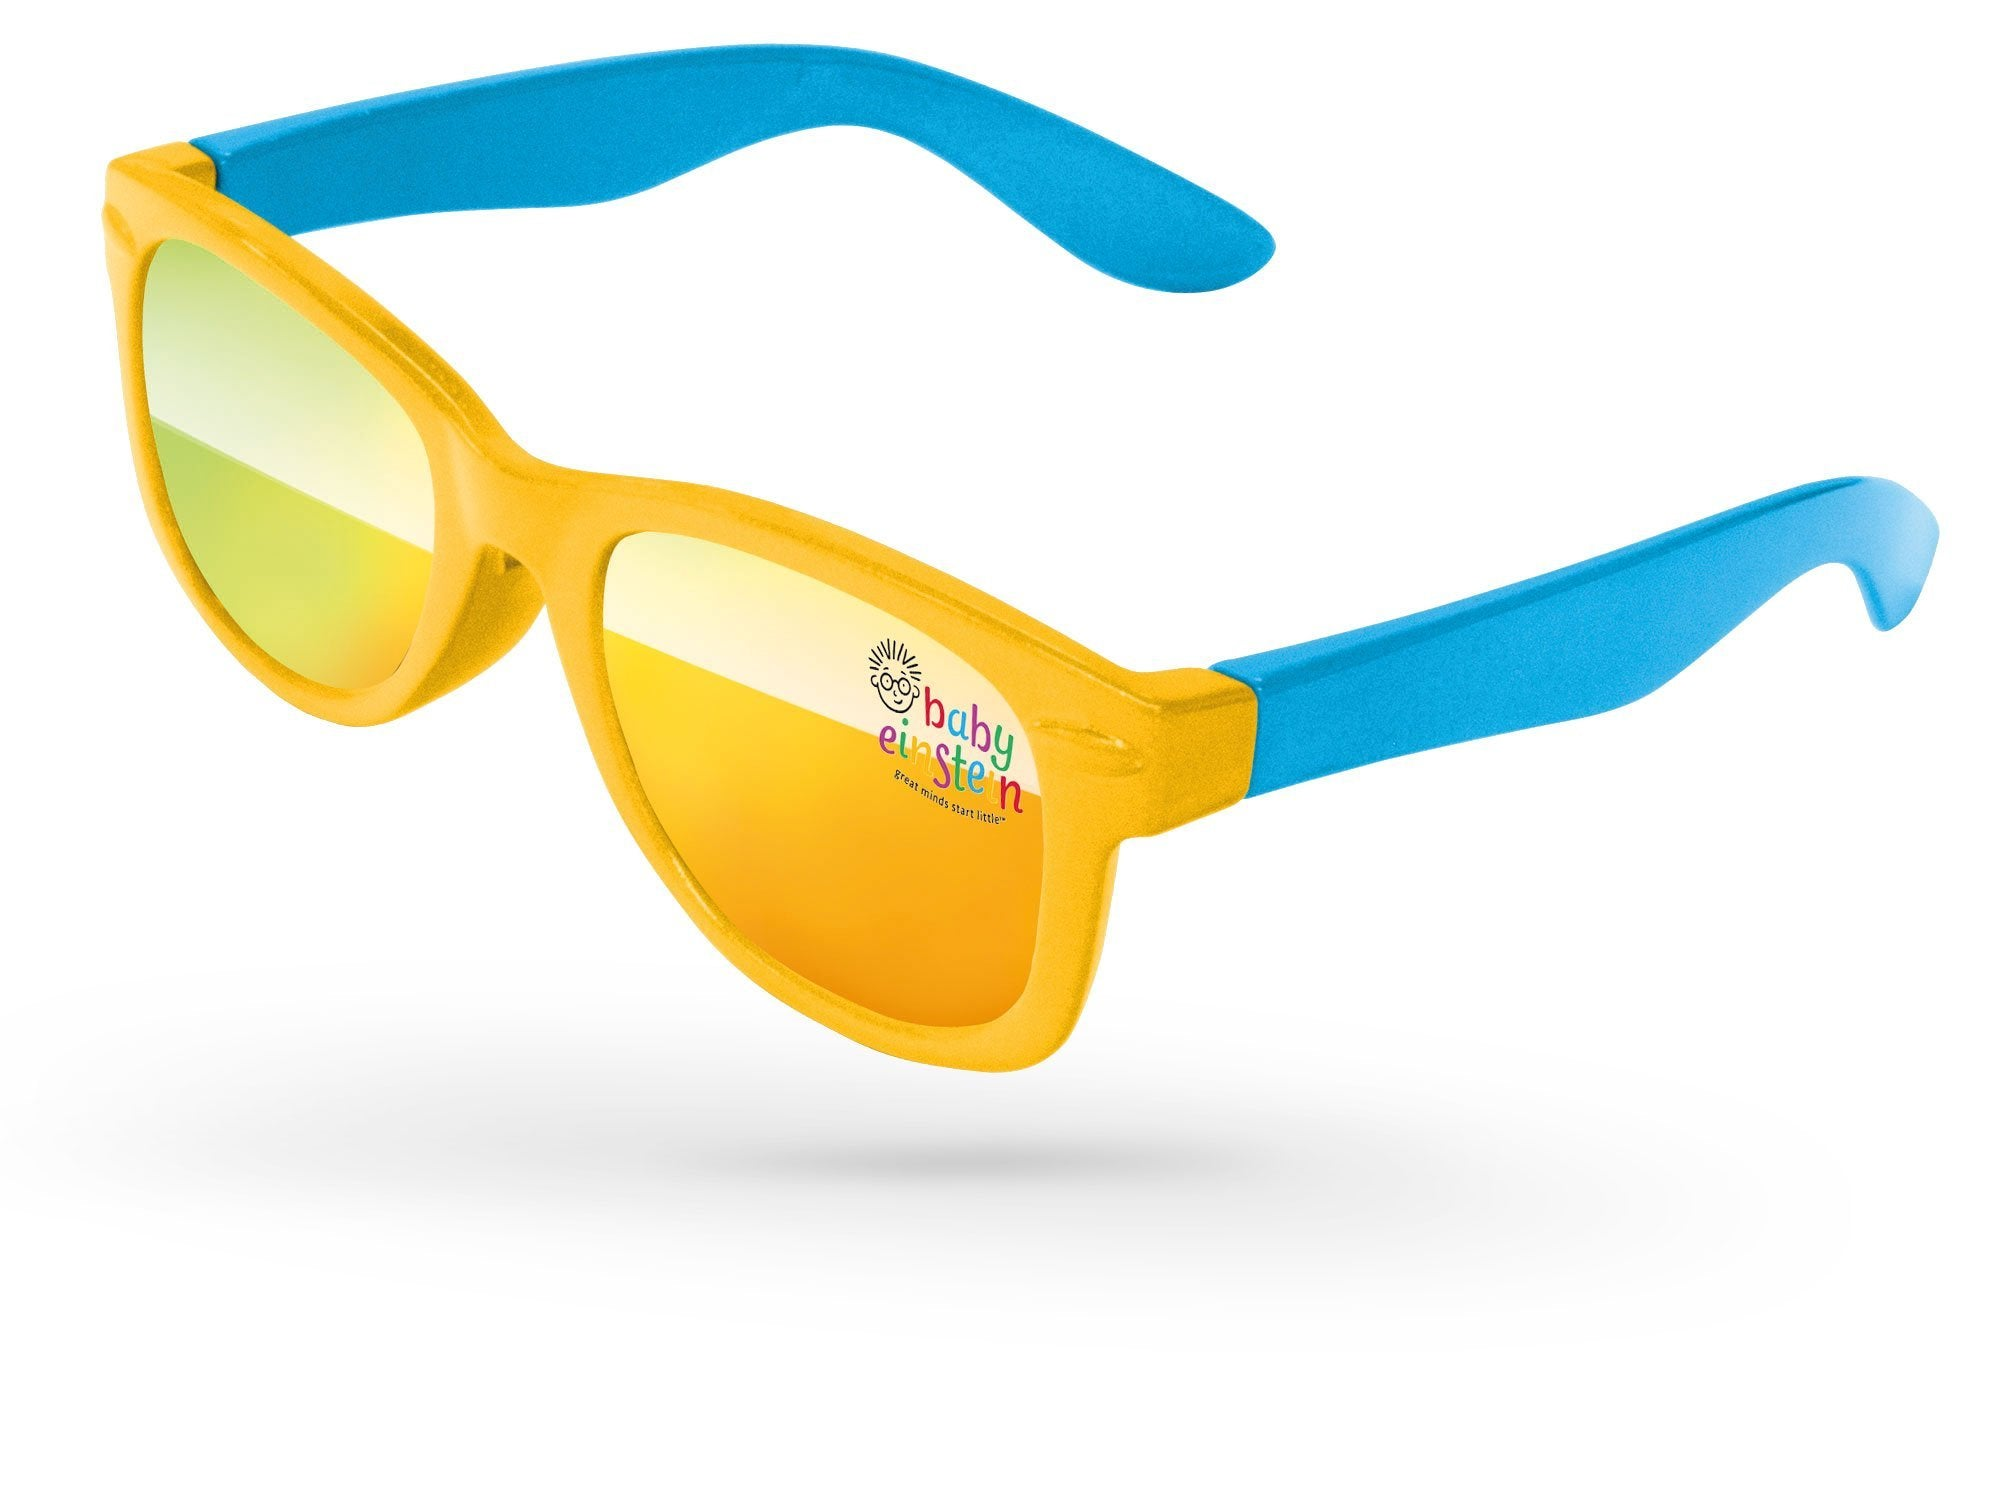 RM702-B - 2-Tone Infant Retro Promotional Sunglasses (0-3 years) w/ full-color lens imprint